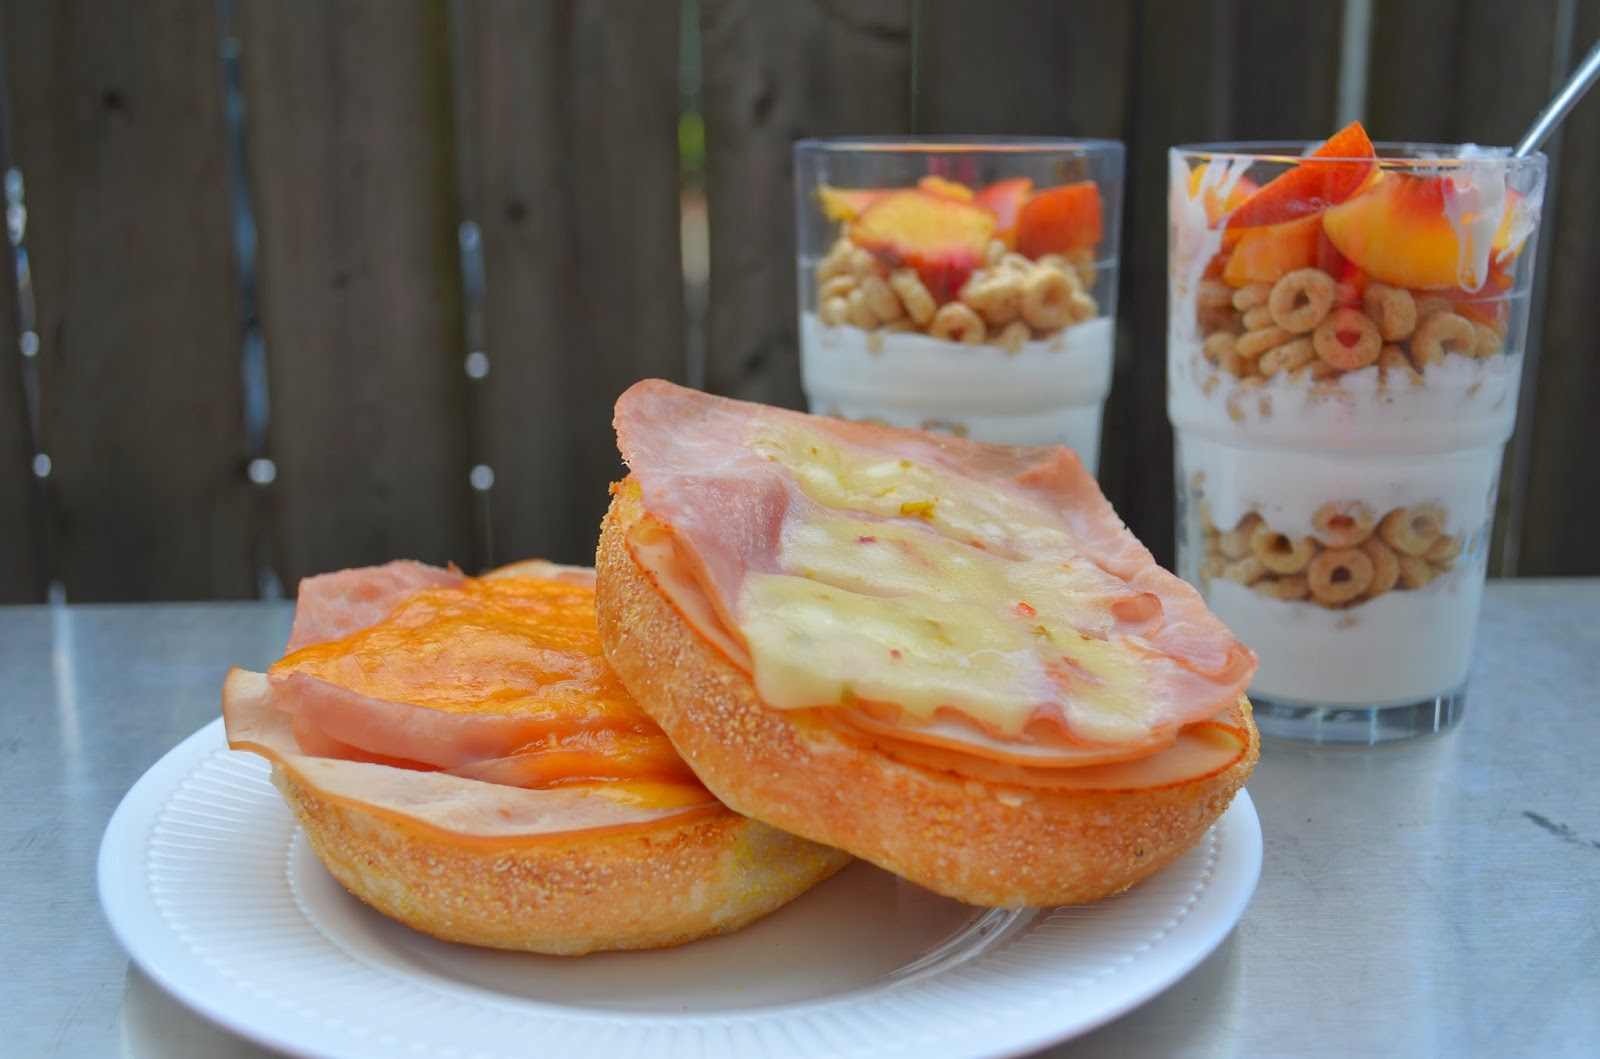 Hot Open-Faced Sandwiches and Yogurt, Cereal, and Fruit Parfaits- wasy and yummy! #PriceChopperB2S #shop #recipe #sandwich #yogurt